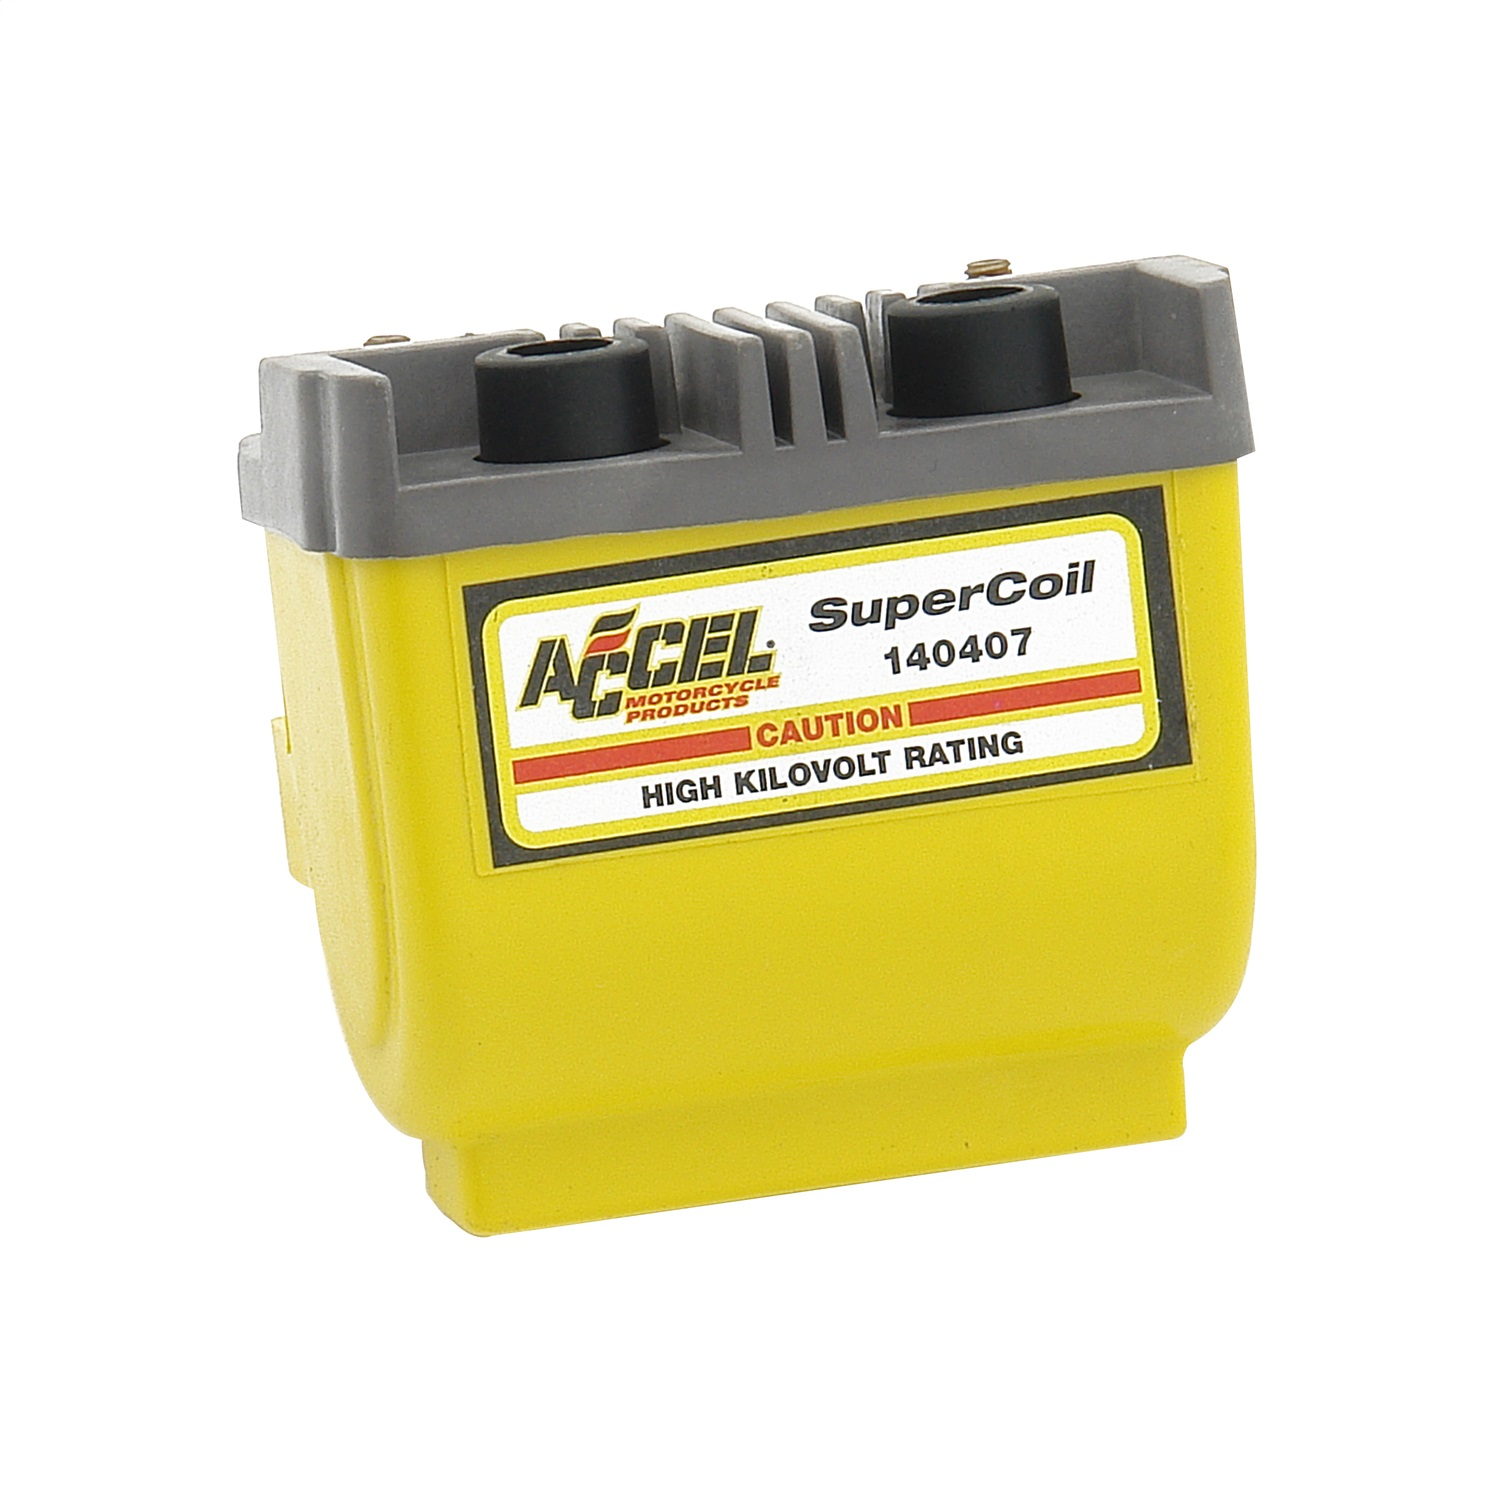 Accel 140407 Super Coil Motorcycle Ignition Coil Dual Fire